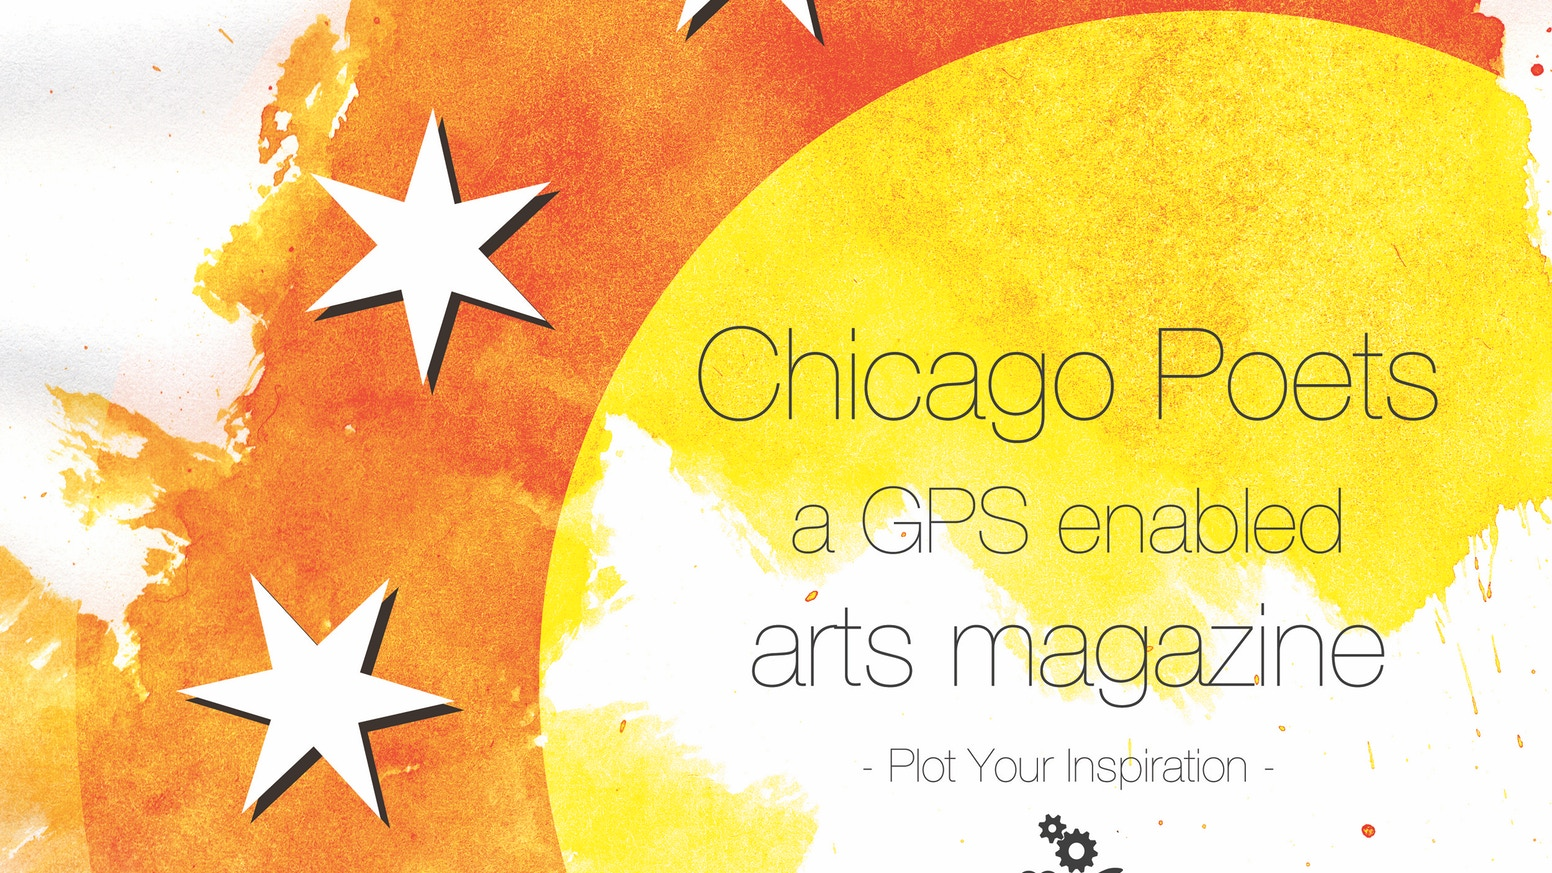 Chicago Poets: a GPS-Enabled Arts Magazine by Josh Fisher